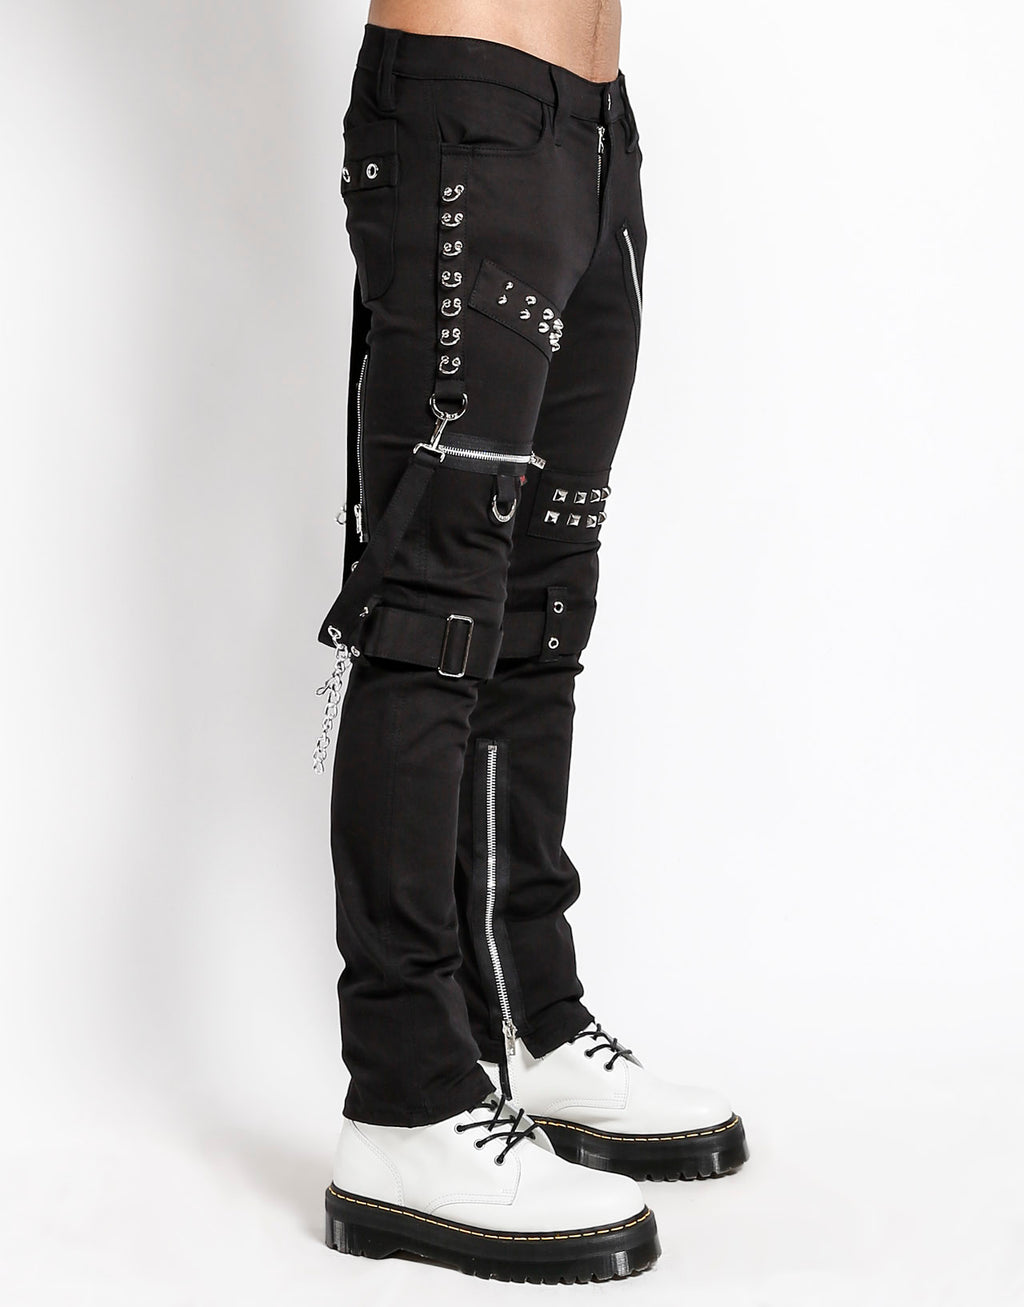 Tripp NYC Men's Studded Bondage Pants